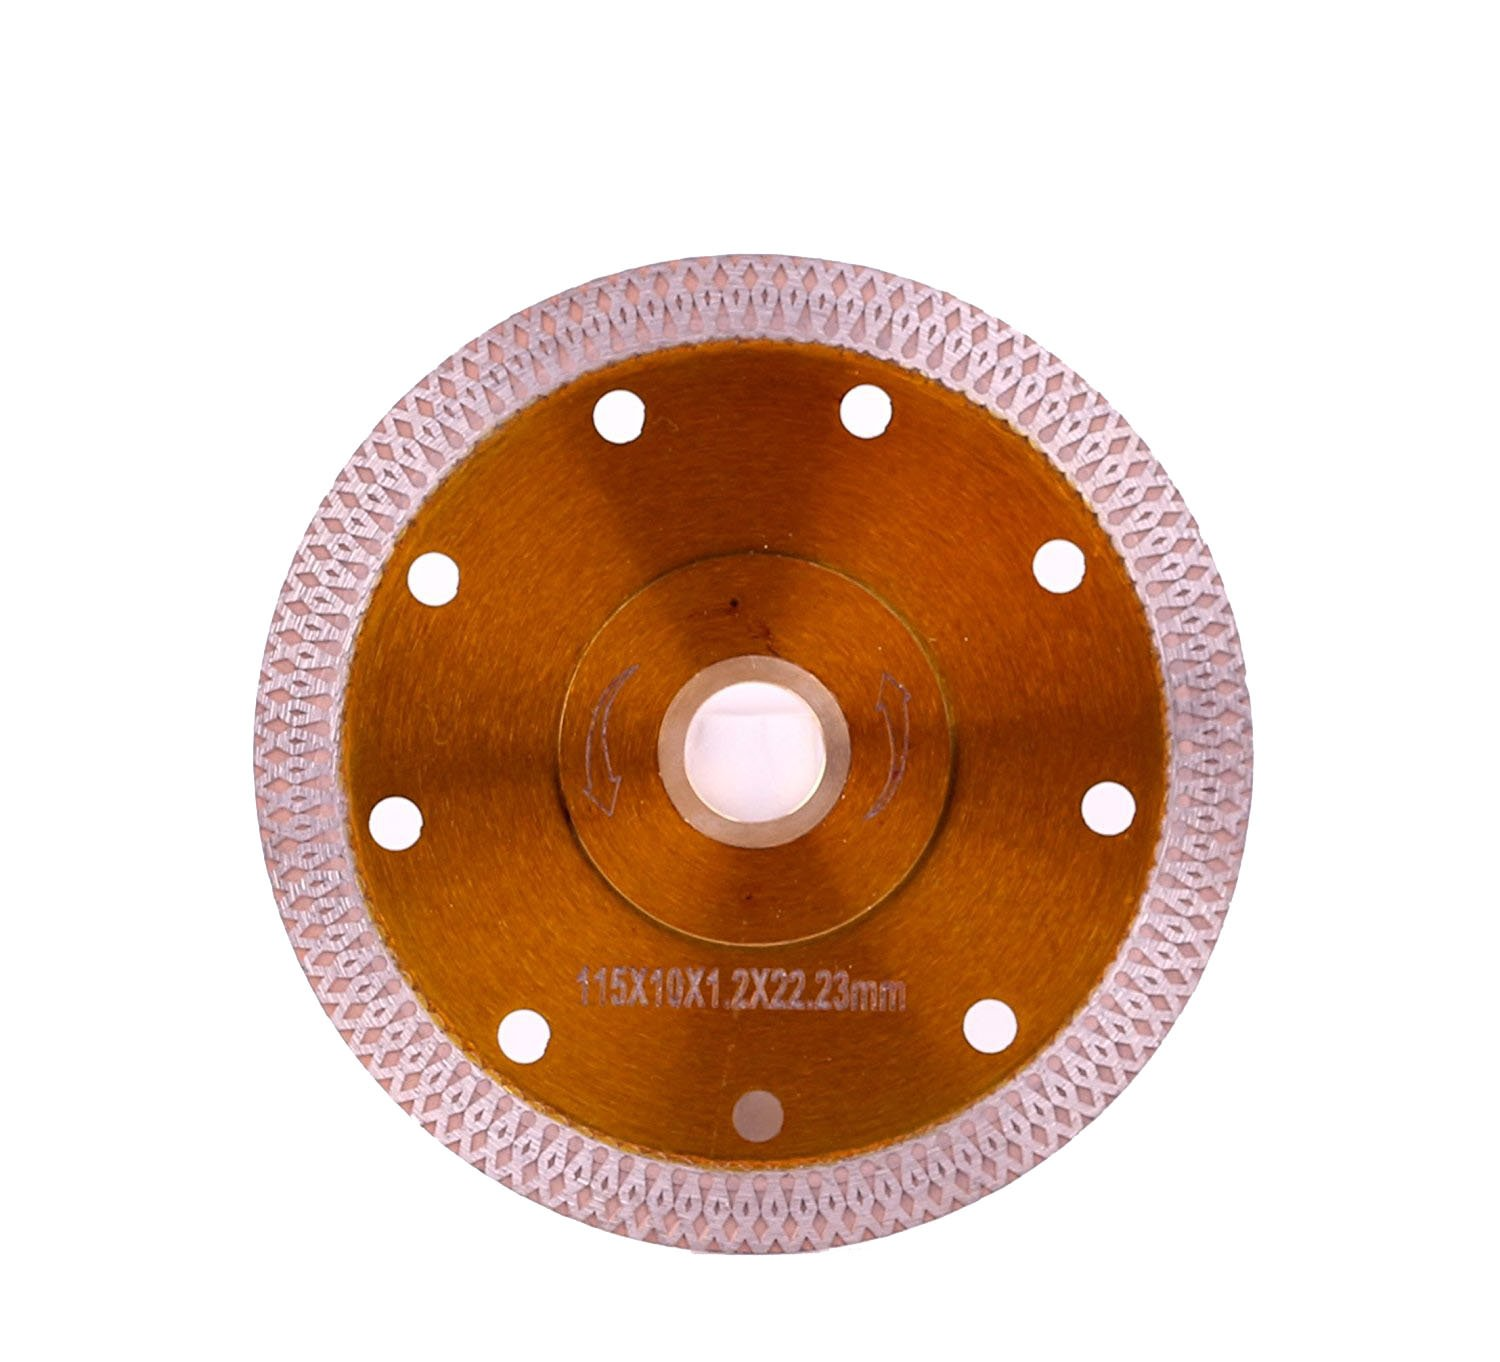 "4.5""D115mm Super Thin Diamond Ceramic Saw Blade Porcelain Cutting Blade for Cutting Ceramic Or Porcelain Tile"